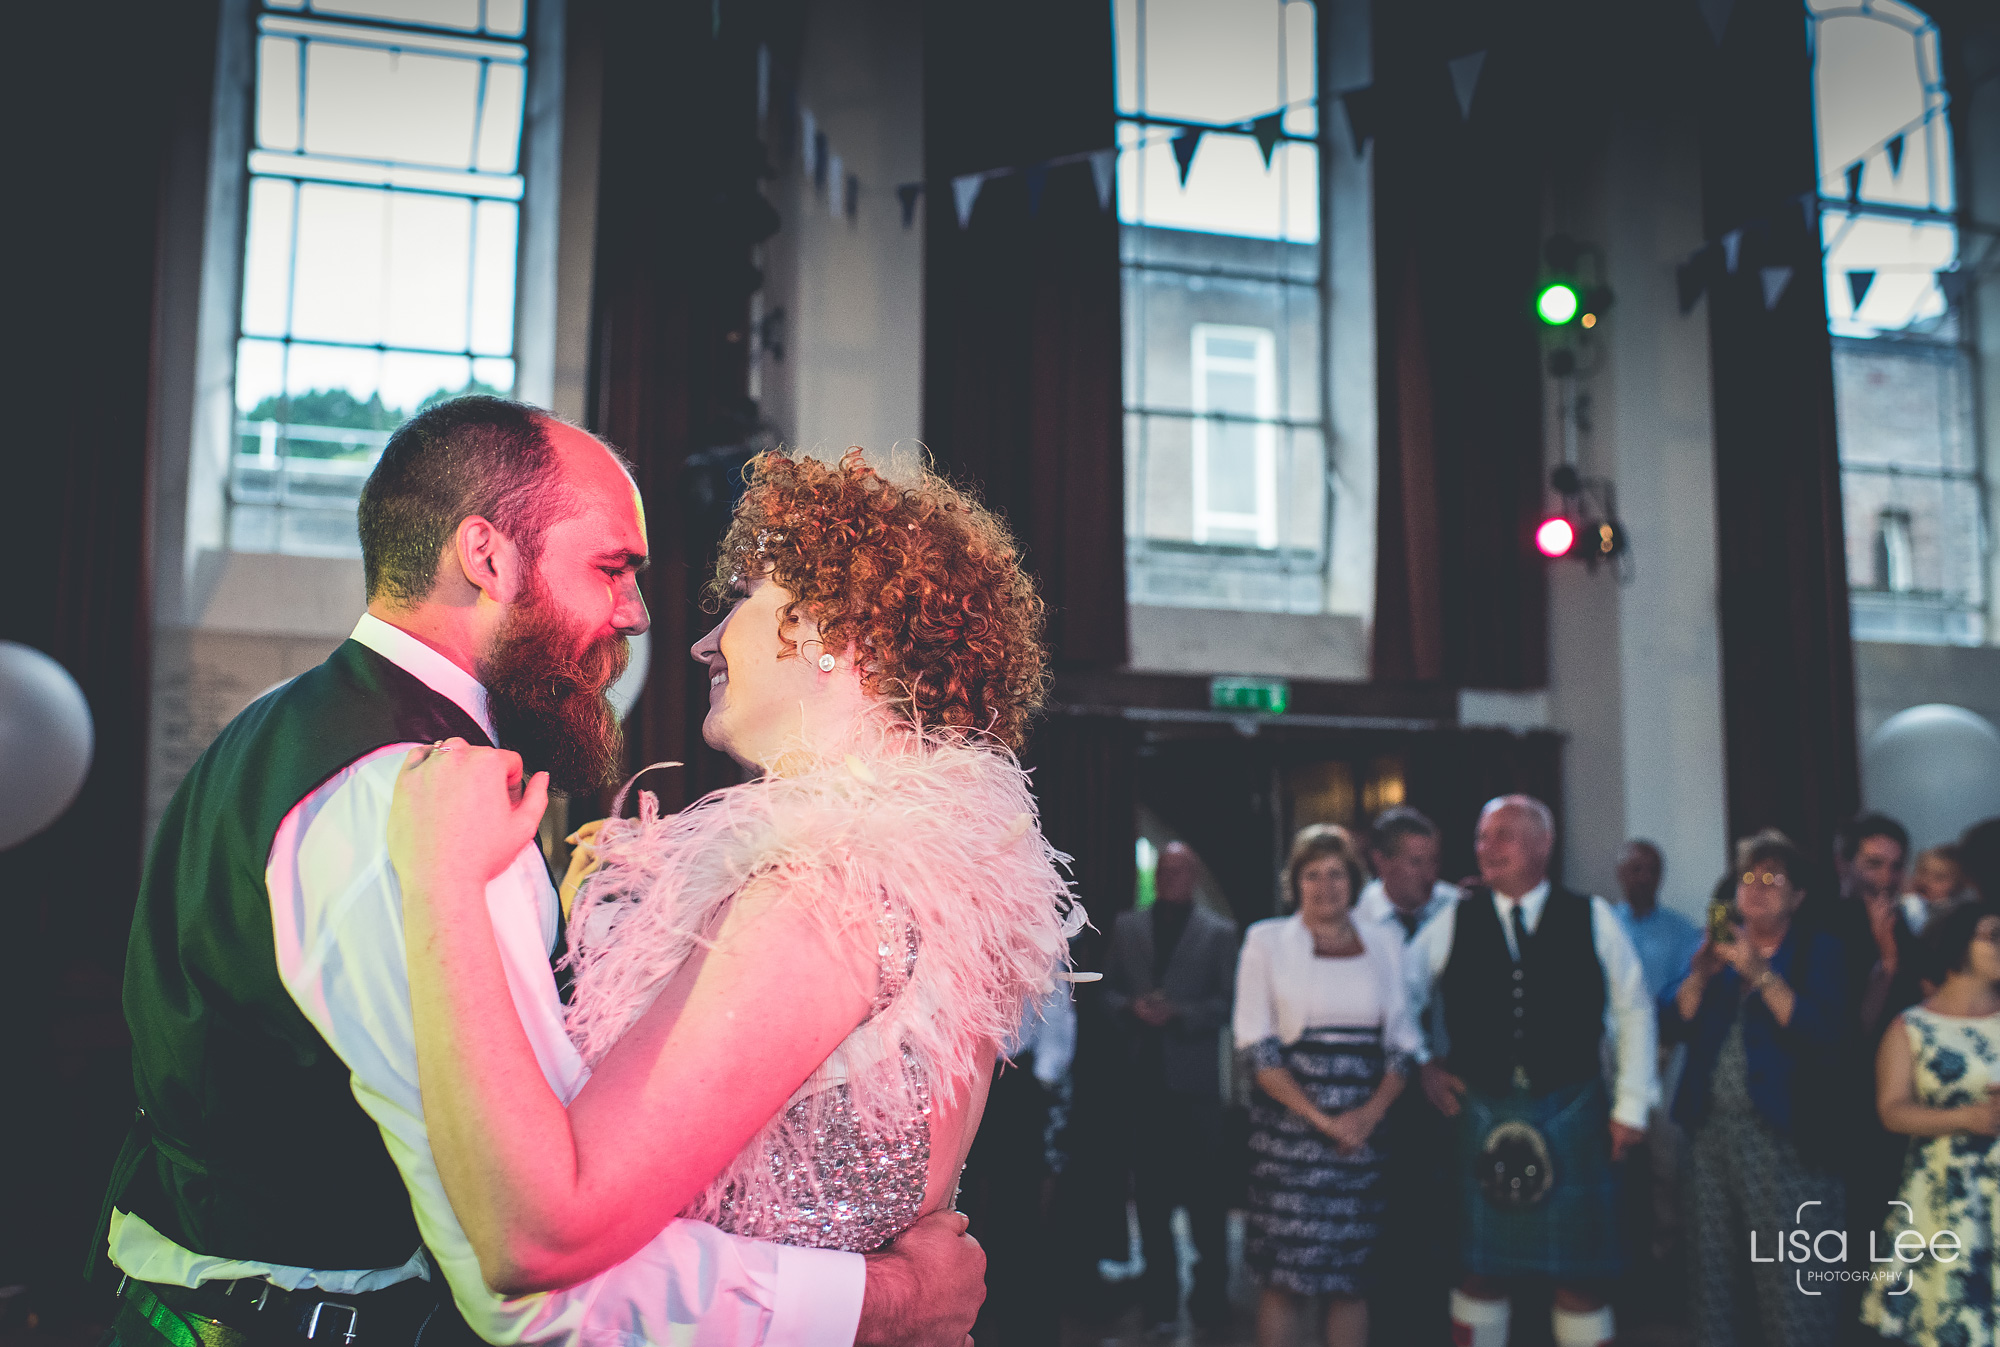 lisa-lee-wedding-photography-first-dance-talbot-heath-4.jpg